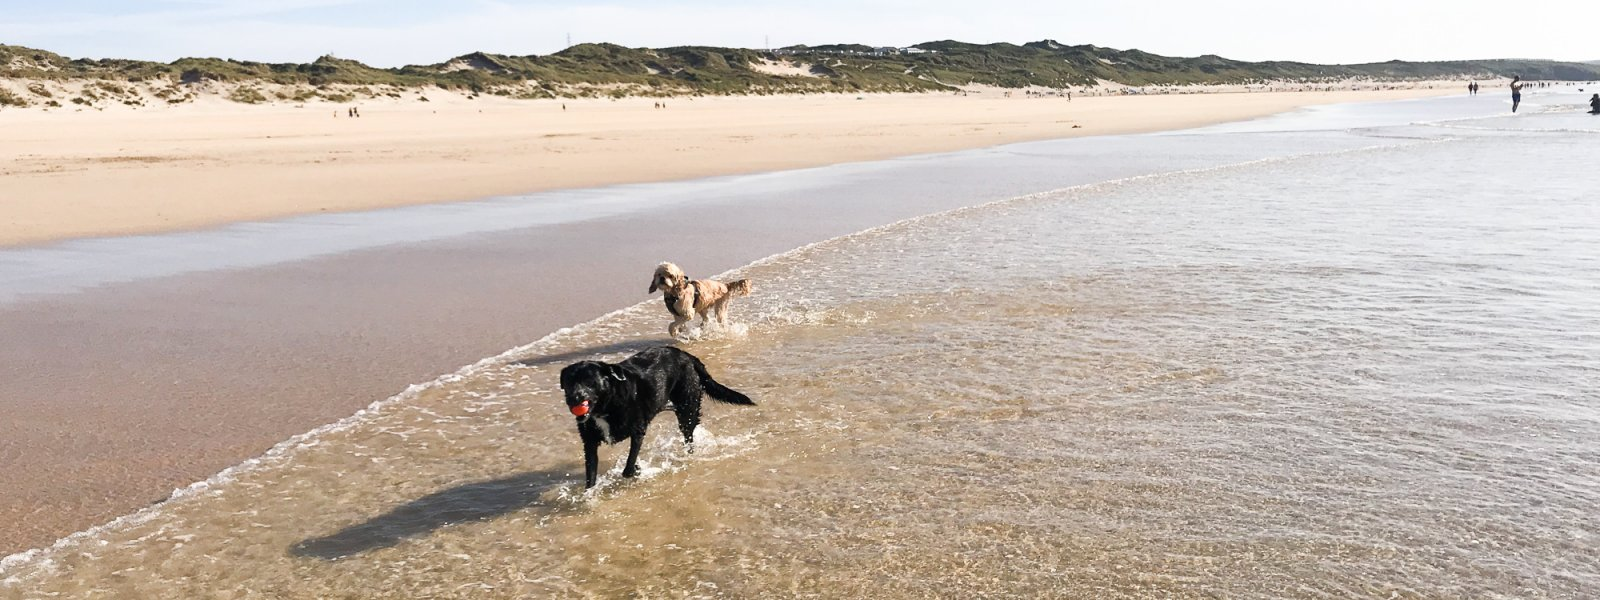 Have your say about dogs on Cornish beaches!